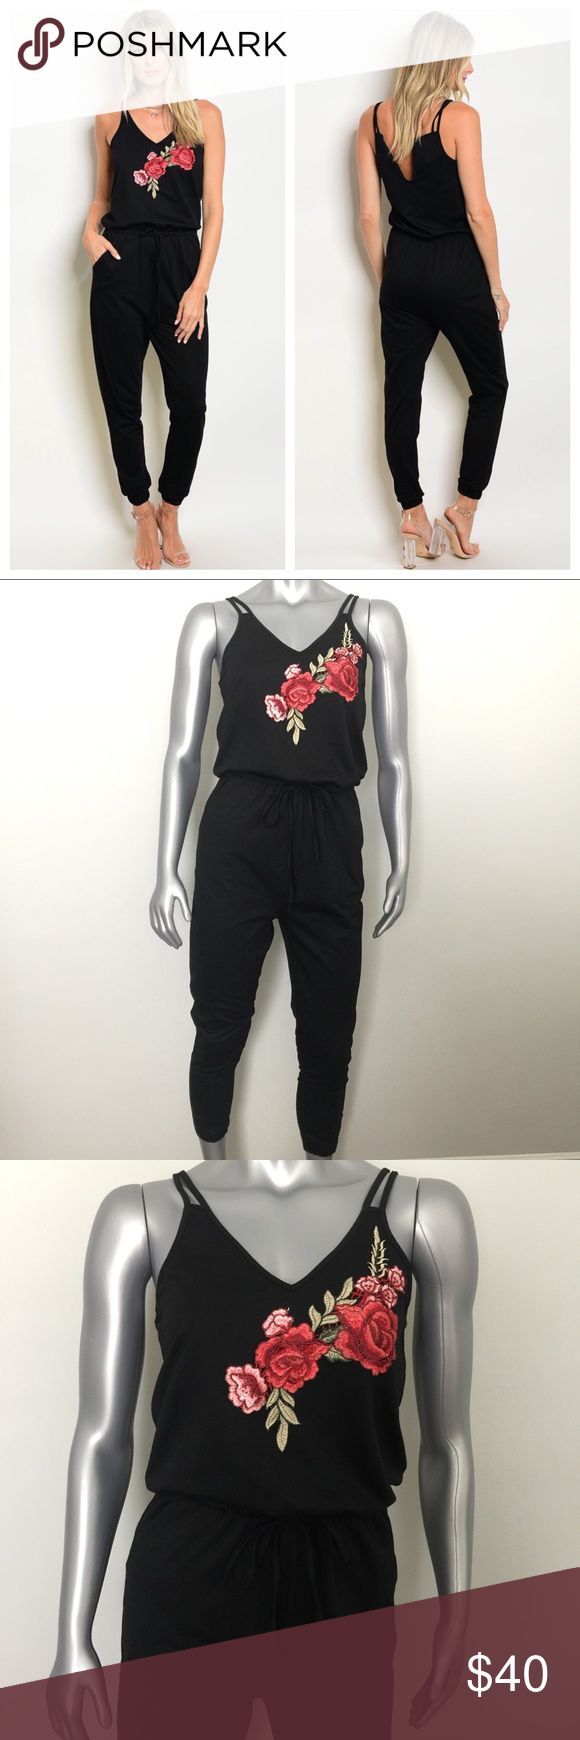 "Black Trendy Rose Flower Patch Detail Jumpsuit Black pant jumpsuit with embroidered rose flower detail patch. Super comfy yet stylish! 85 % Polyester 15% Cotton.   Small: B: 17"" W: 13"" L: 57 Inches.  Medium B: 18"" W: 14"" L: 57 Inches.  Large: B: 19"" W: 15"". L: 57 Inches.  (Measurements laying flat across) Elastic waist can easily be stretched about 1 1/2"" (inches) Pants Jumpsuits & Rompers"